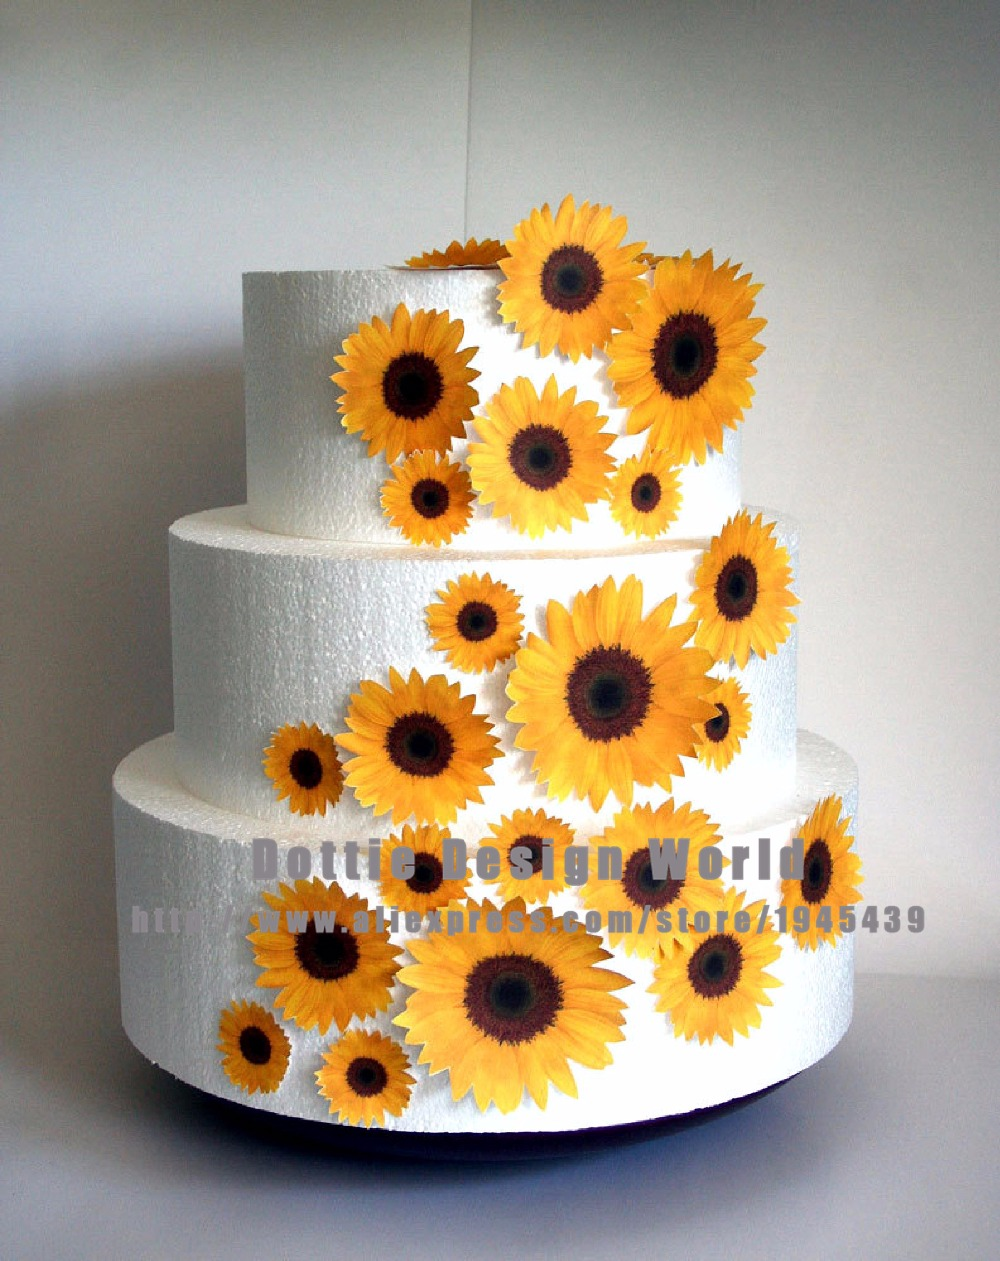 Cake Designs On Rice Paper : Aliexpress.com : Buy 25 Mixed Sunflower Edible cake topper ...